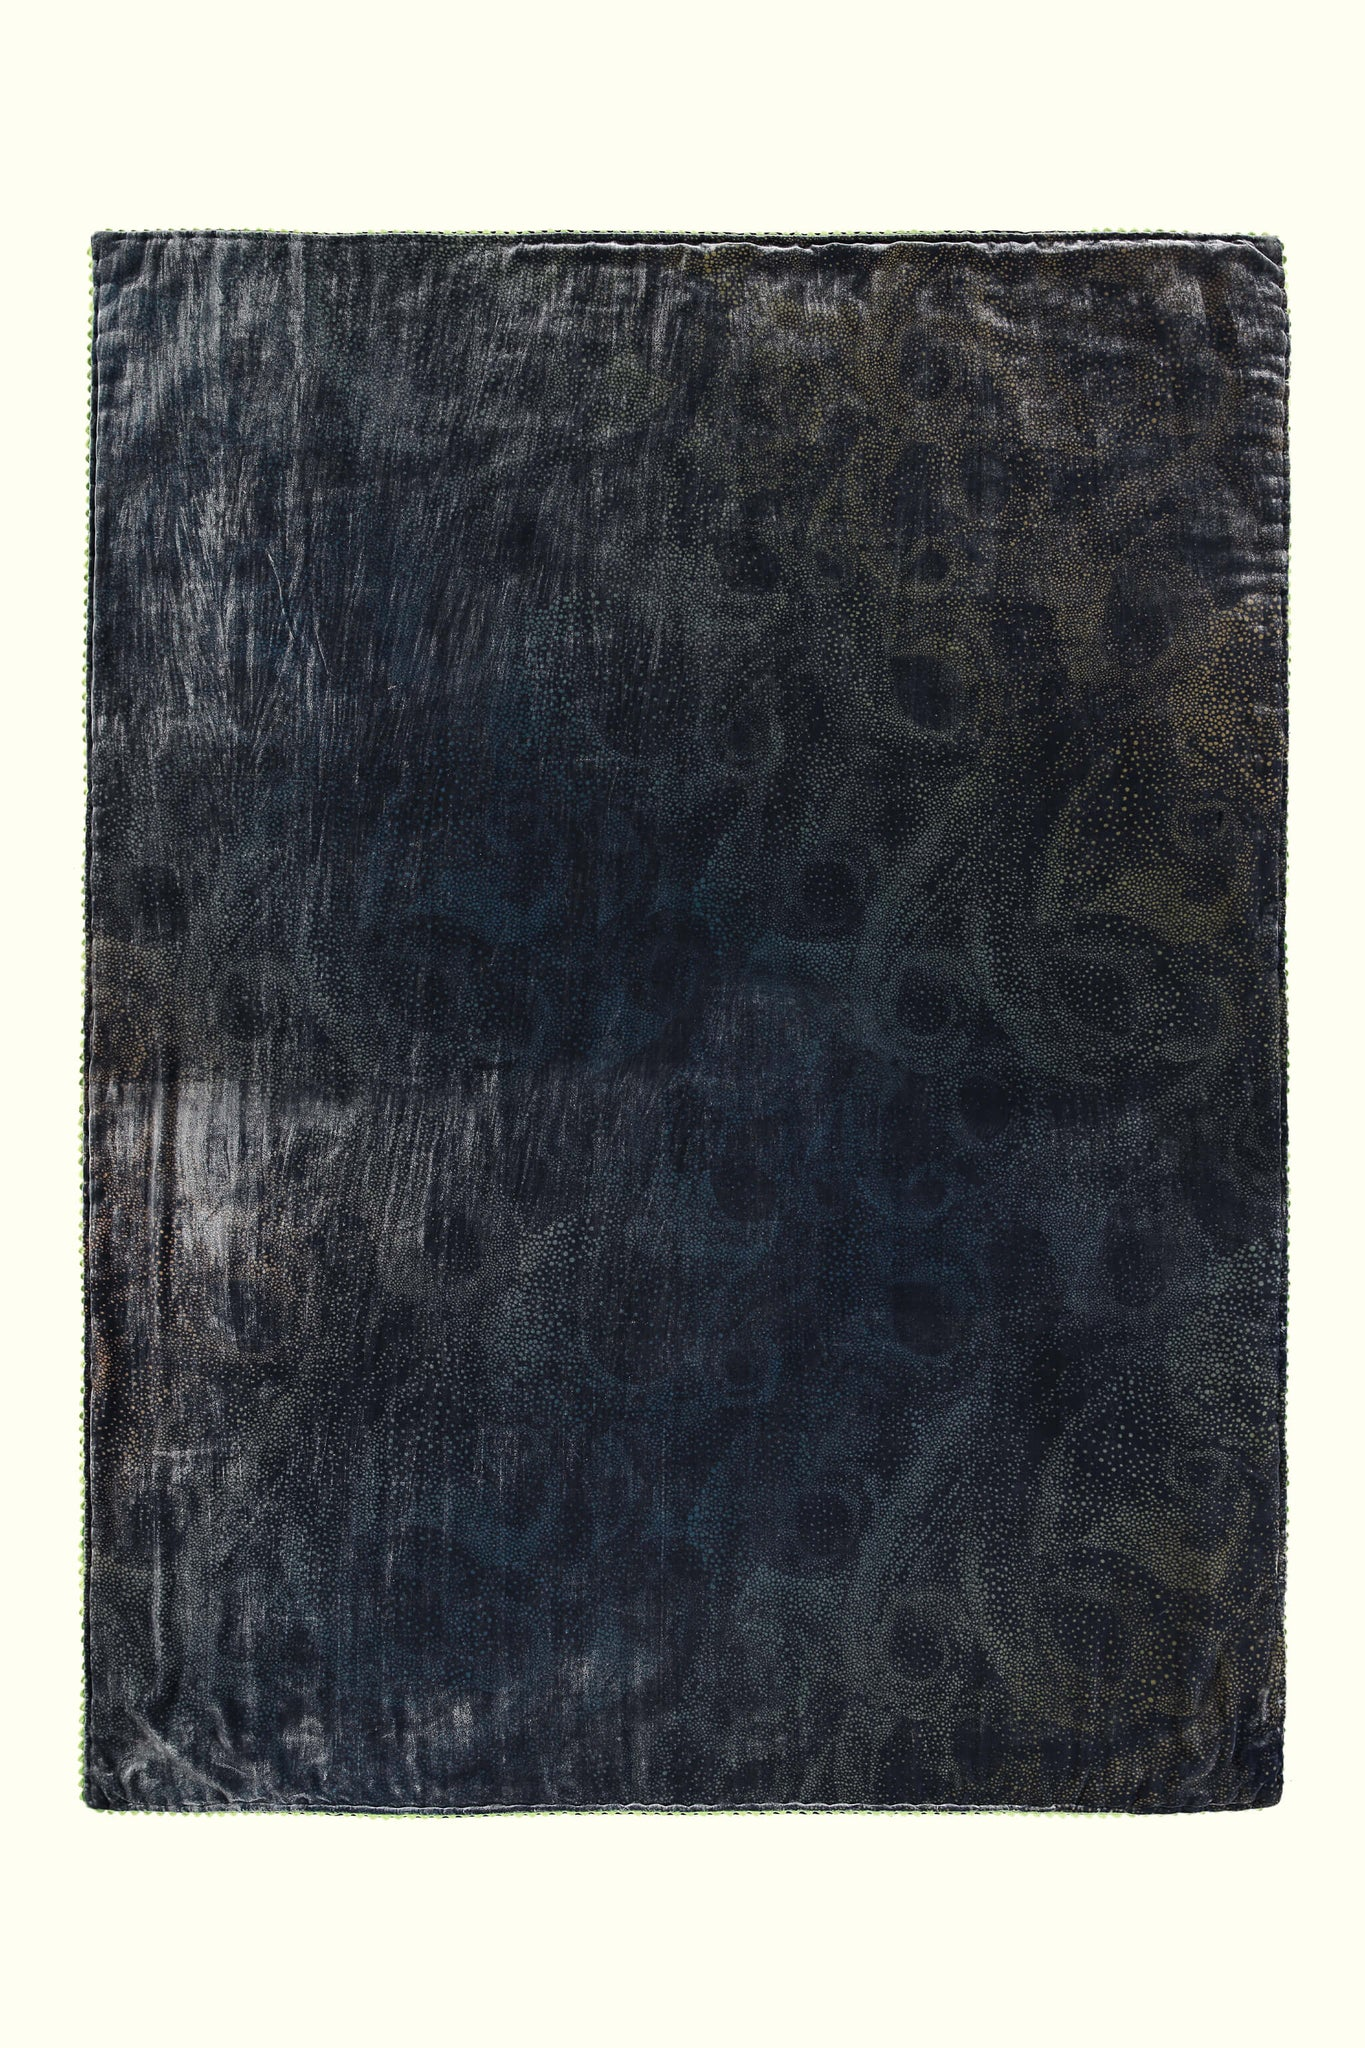 A luxury British silk velvet bed throw by GVE in navy and gold Aurora print design.